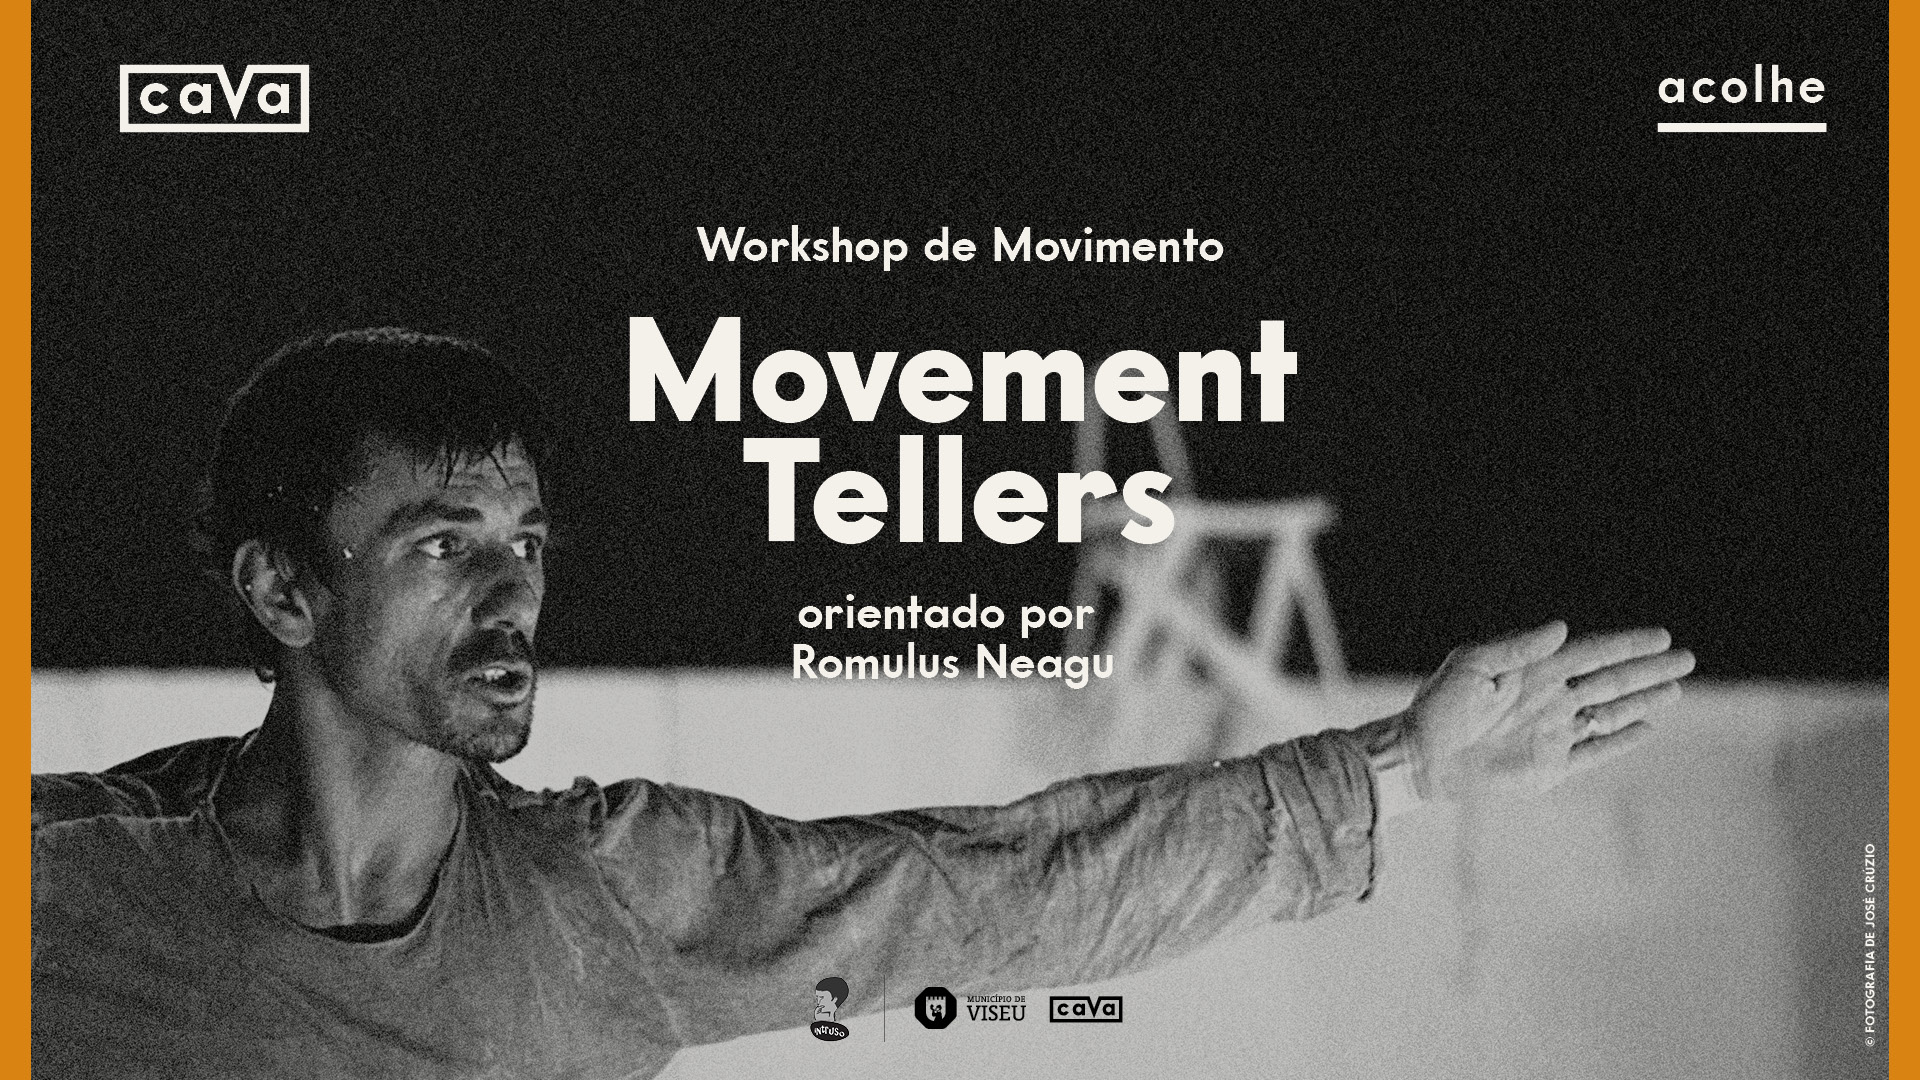 Workshop de movimento: Movement Tellers